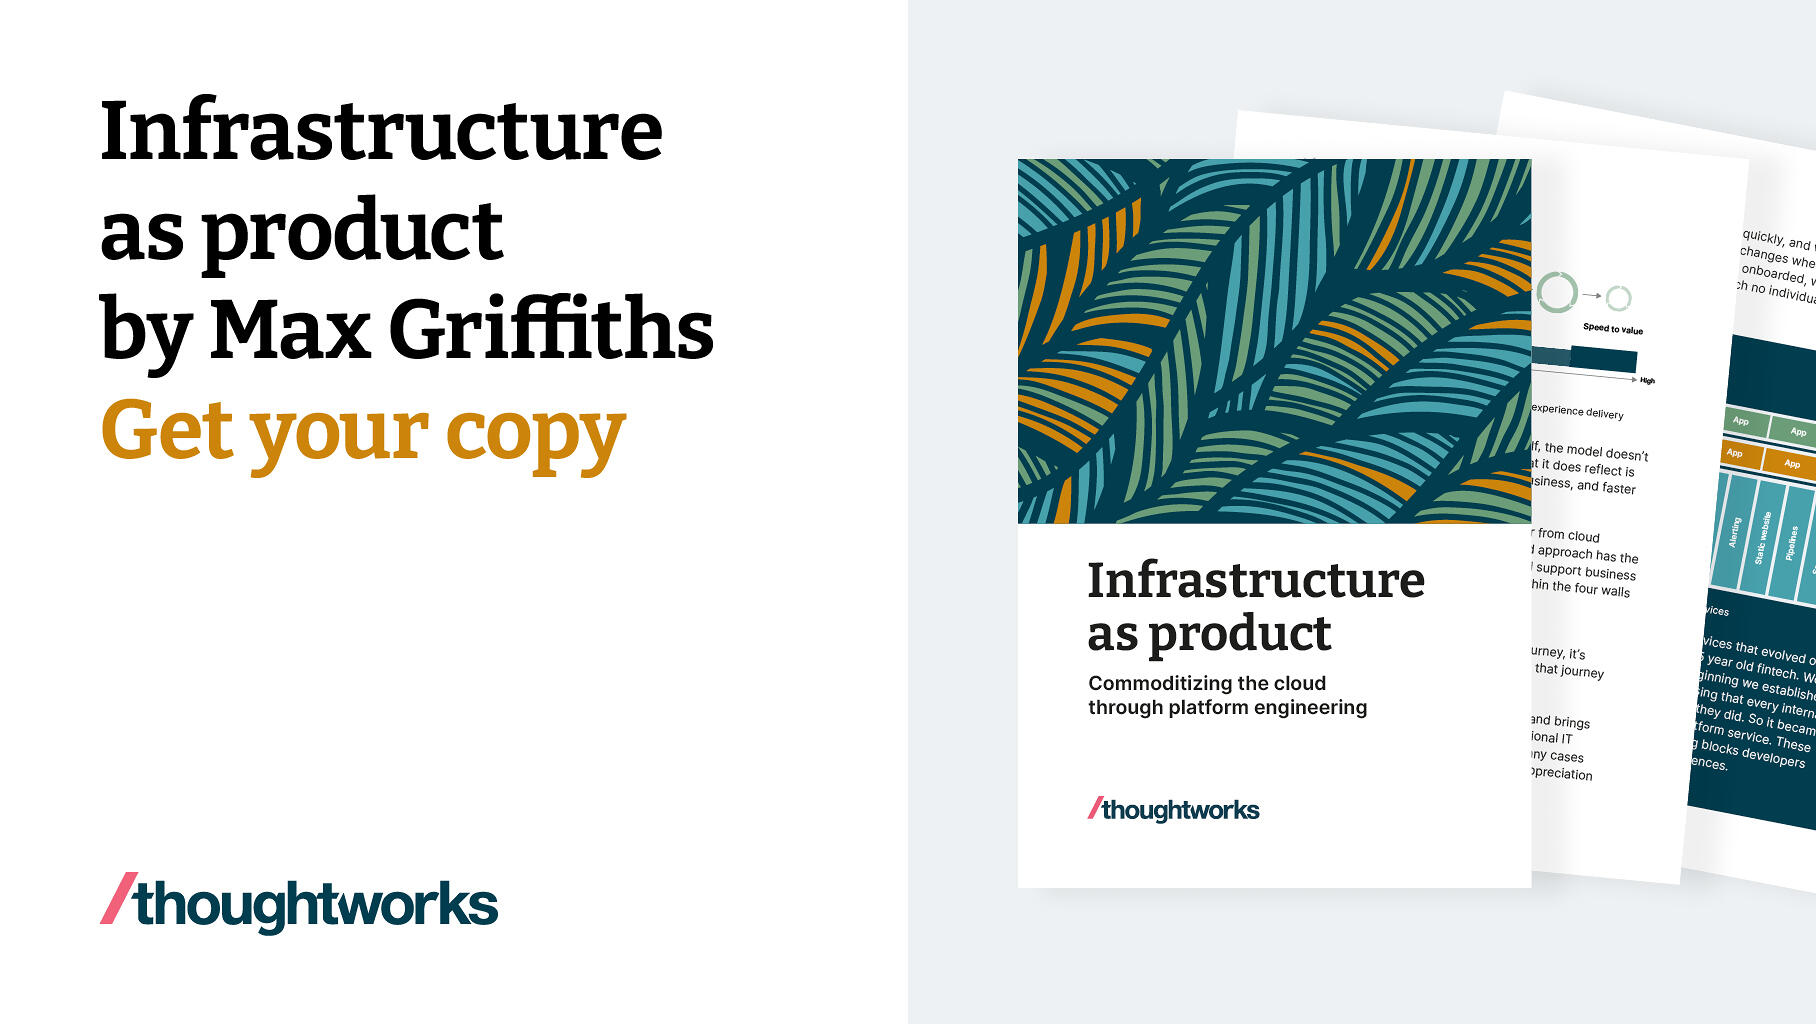 Infrastructure as product